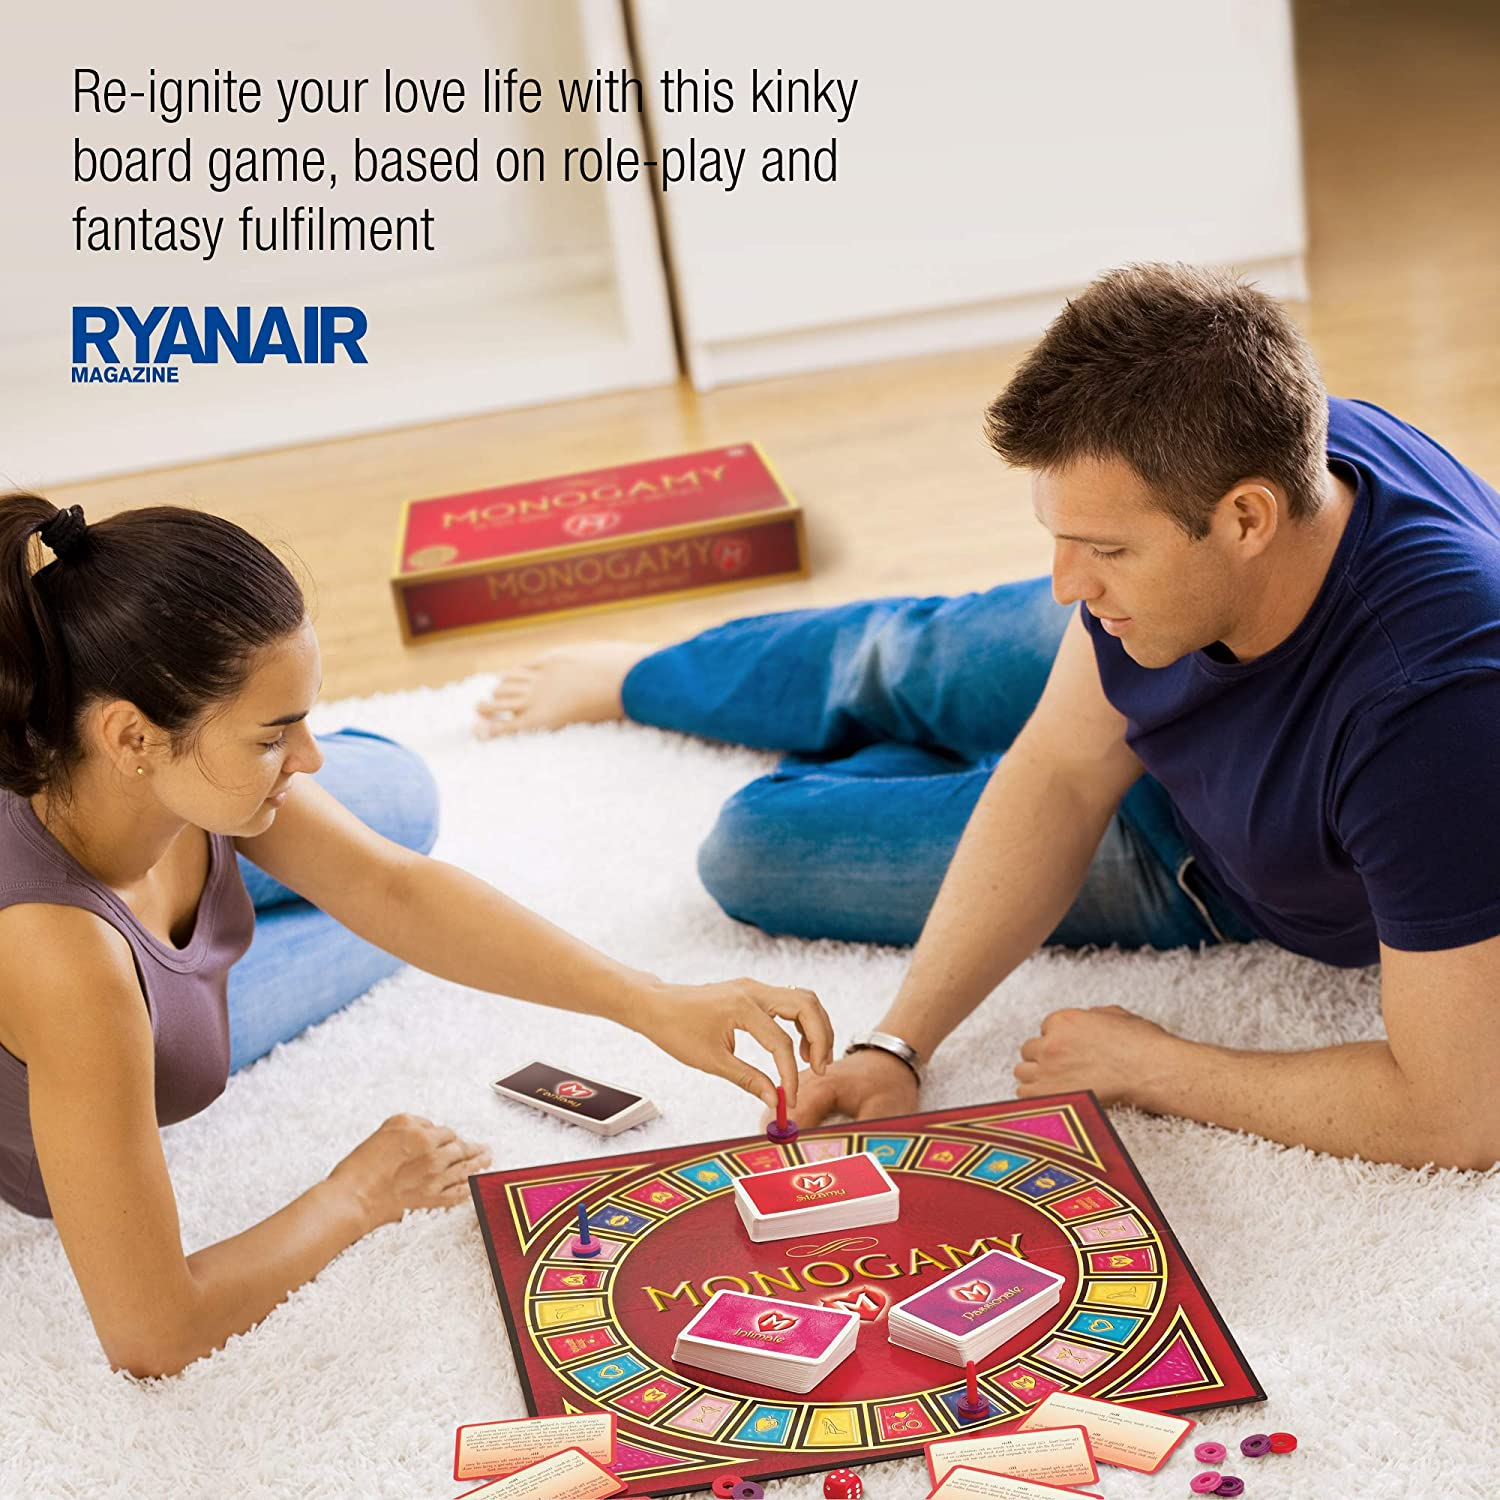 With Your Partner, Adult Couples Board Game: Amazon.co.uk: Health &  Personal Care